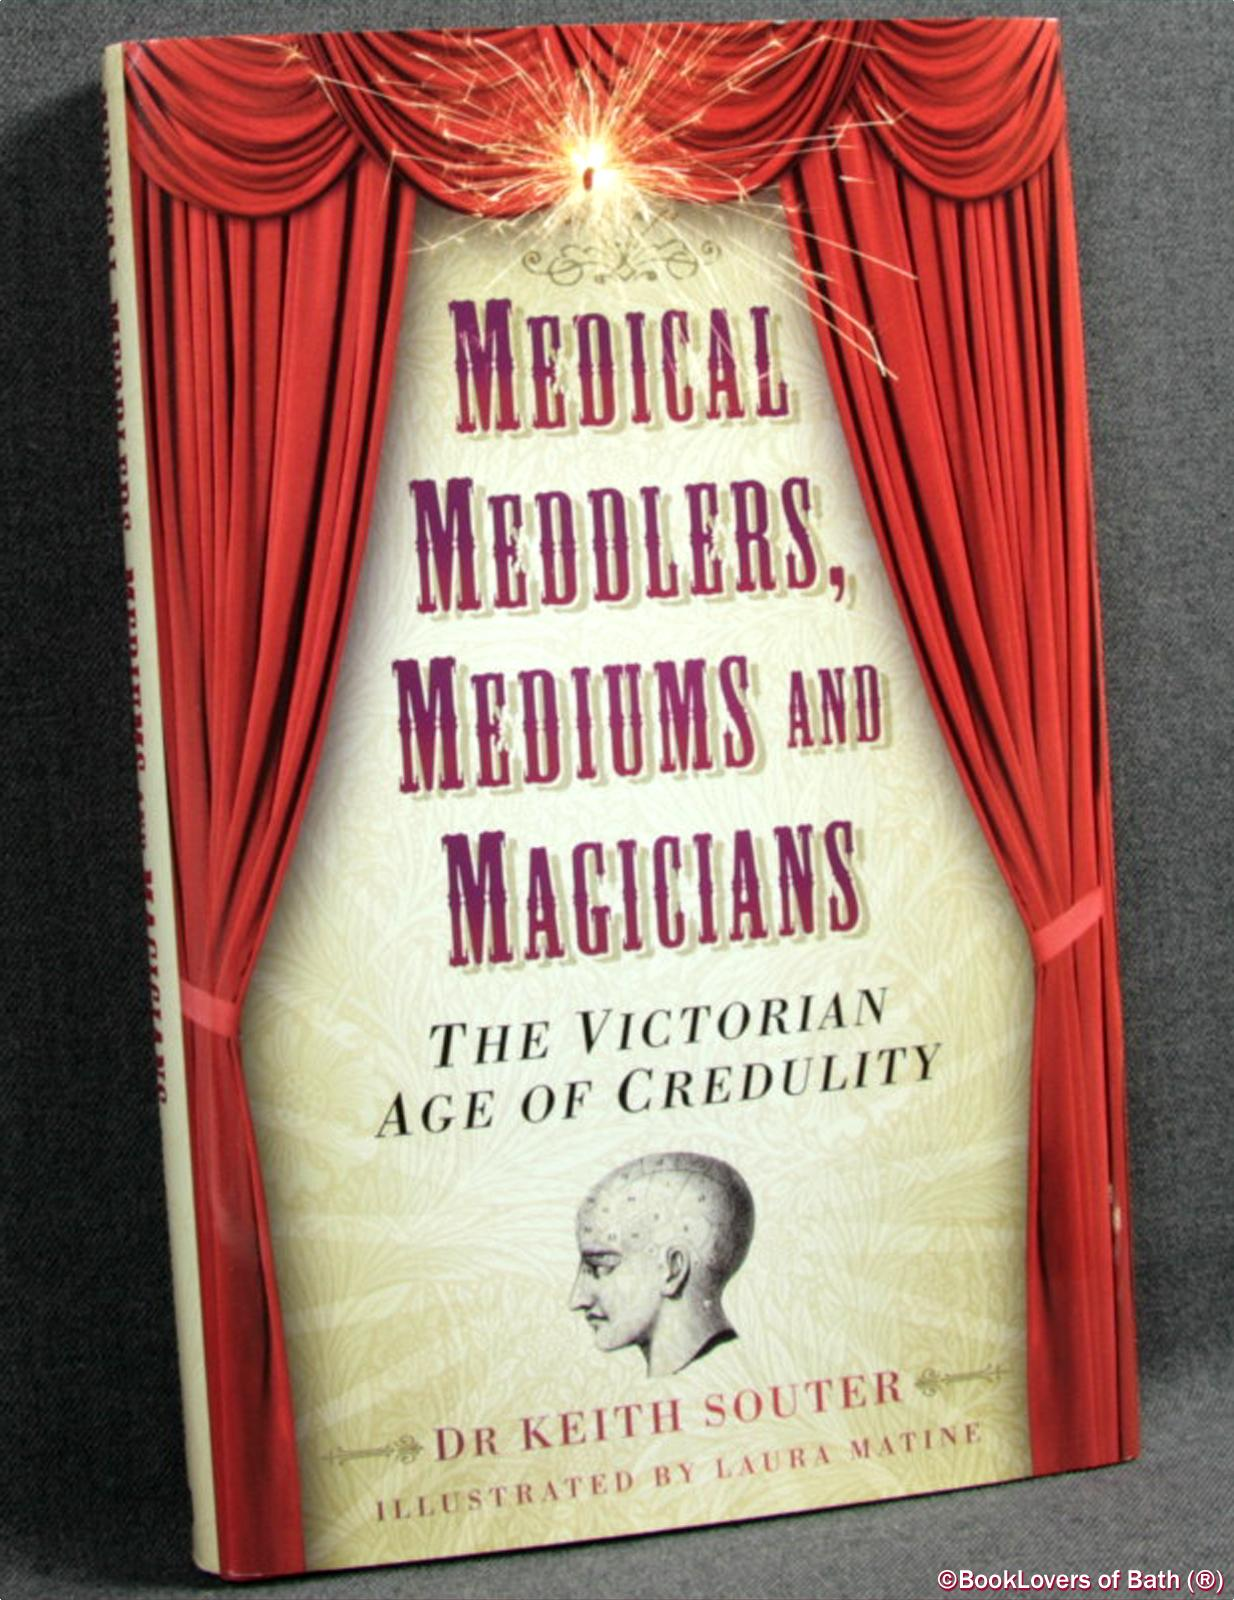 Medical Meddlers, Mediums & Magicians: The Victorian Age of Credulity - Dr. Keith Souter